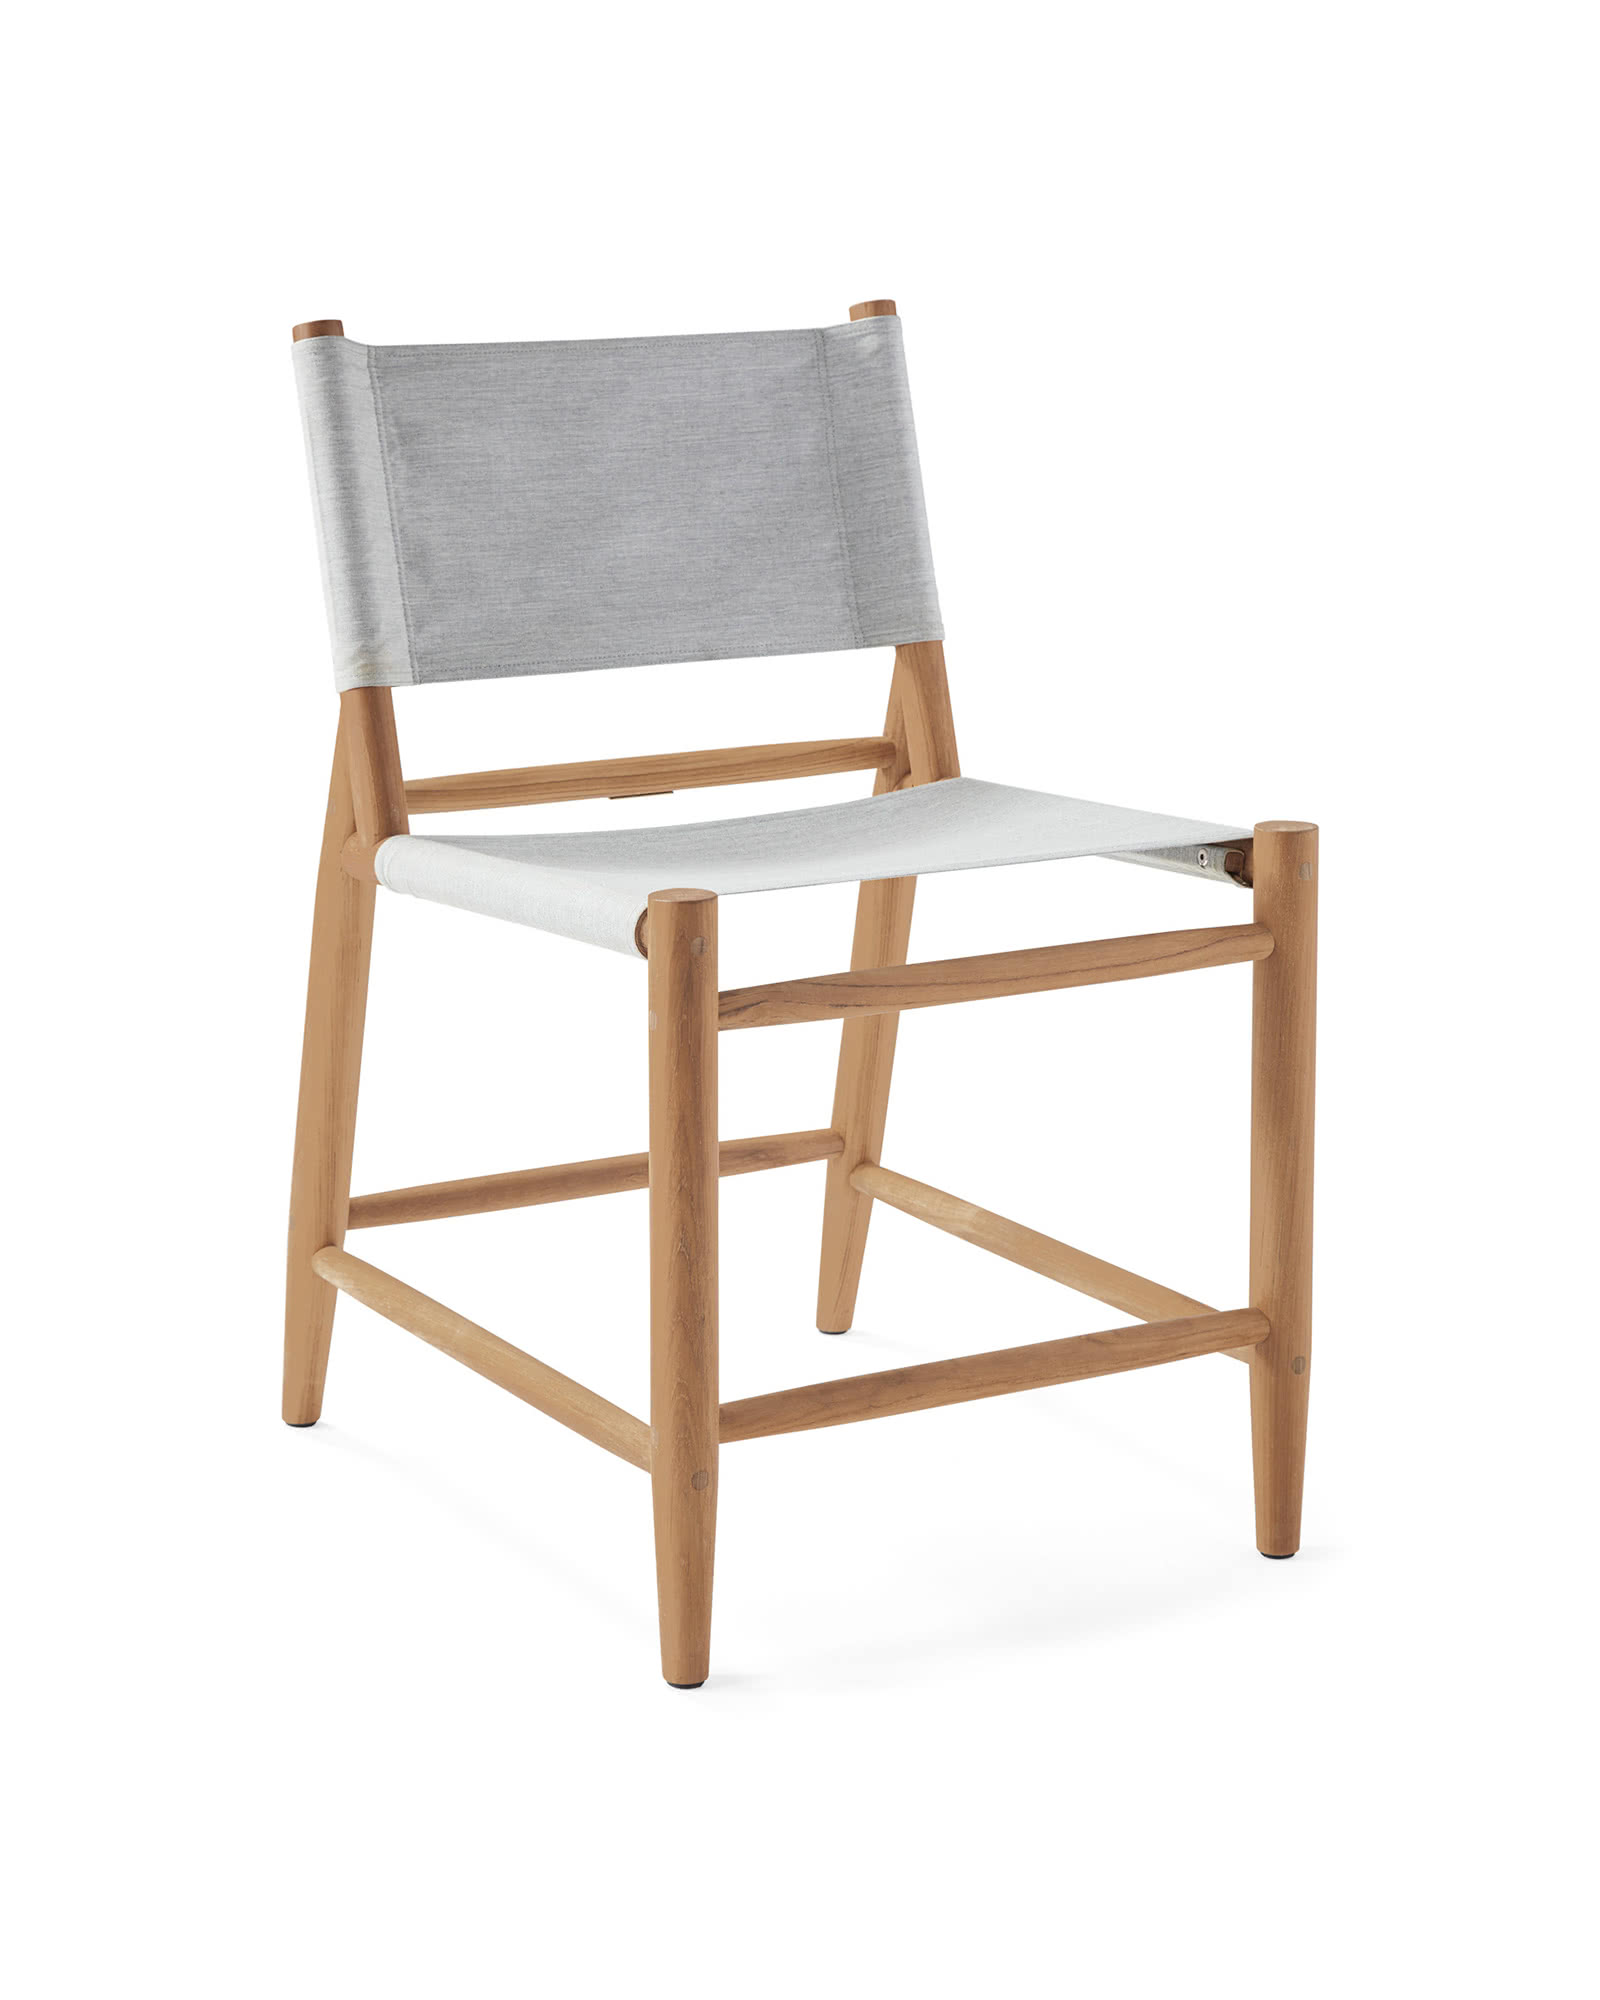 Pier Dining Chair,